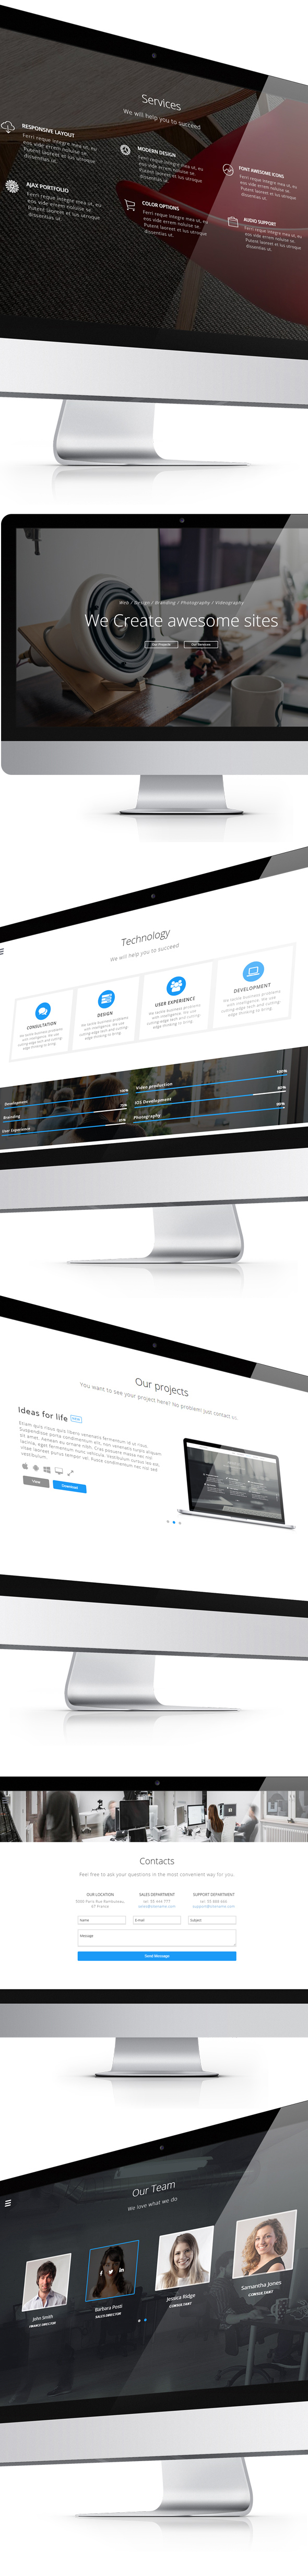 Avensis - One Page Responsive Parallax Template - 3